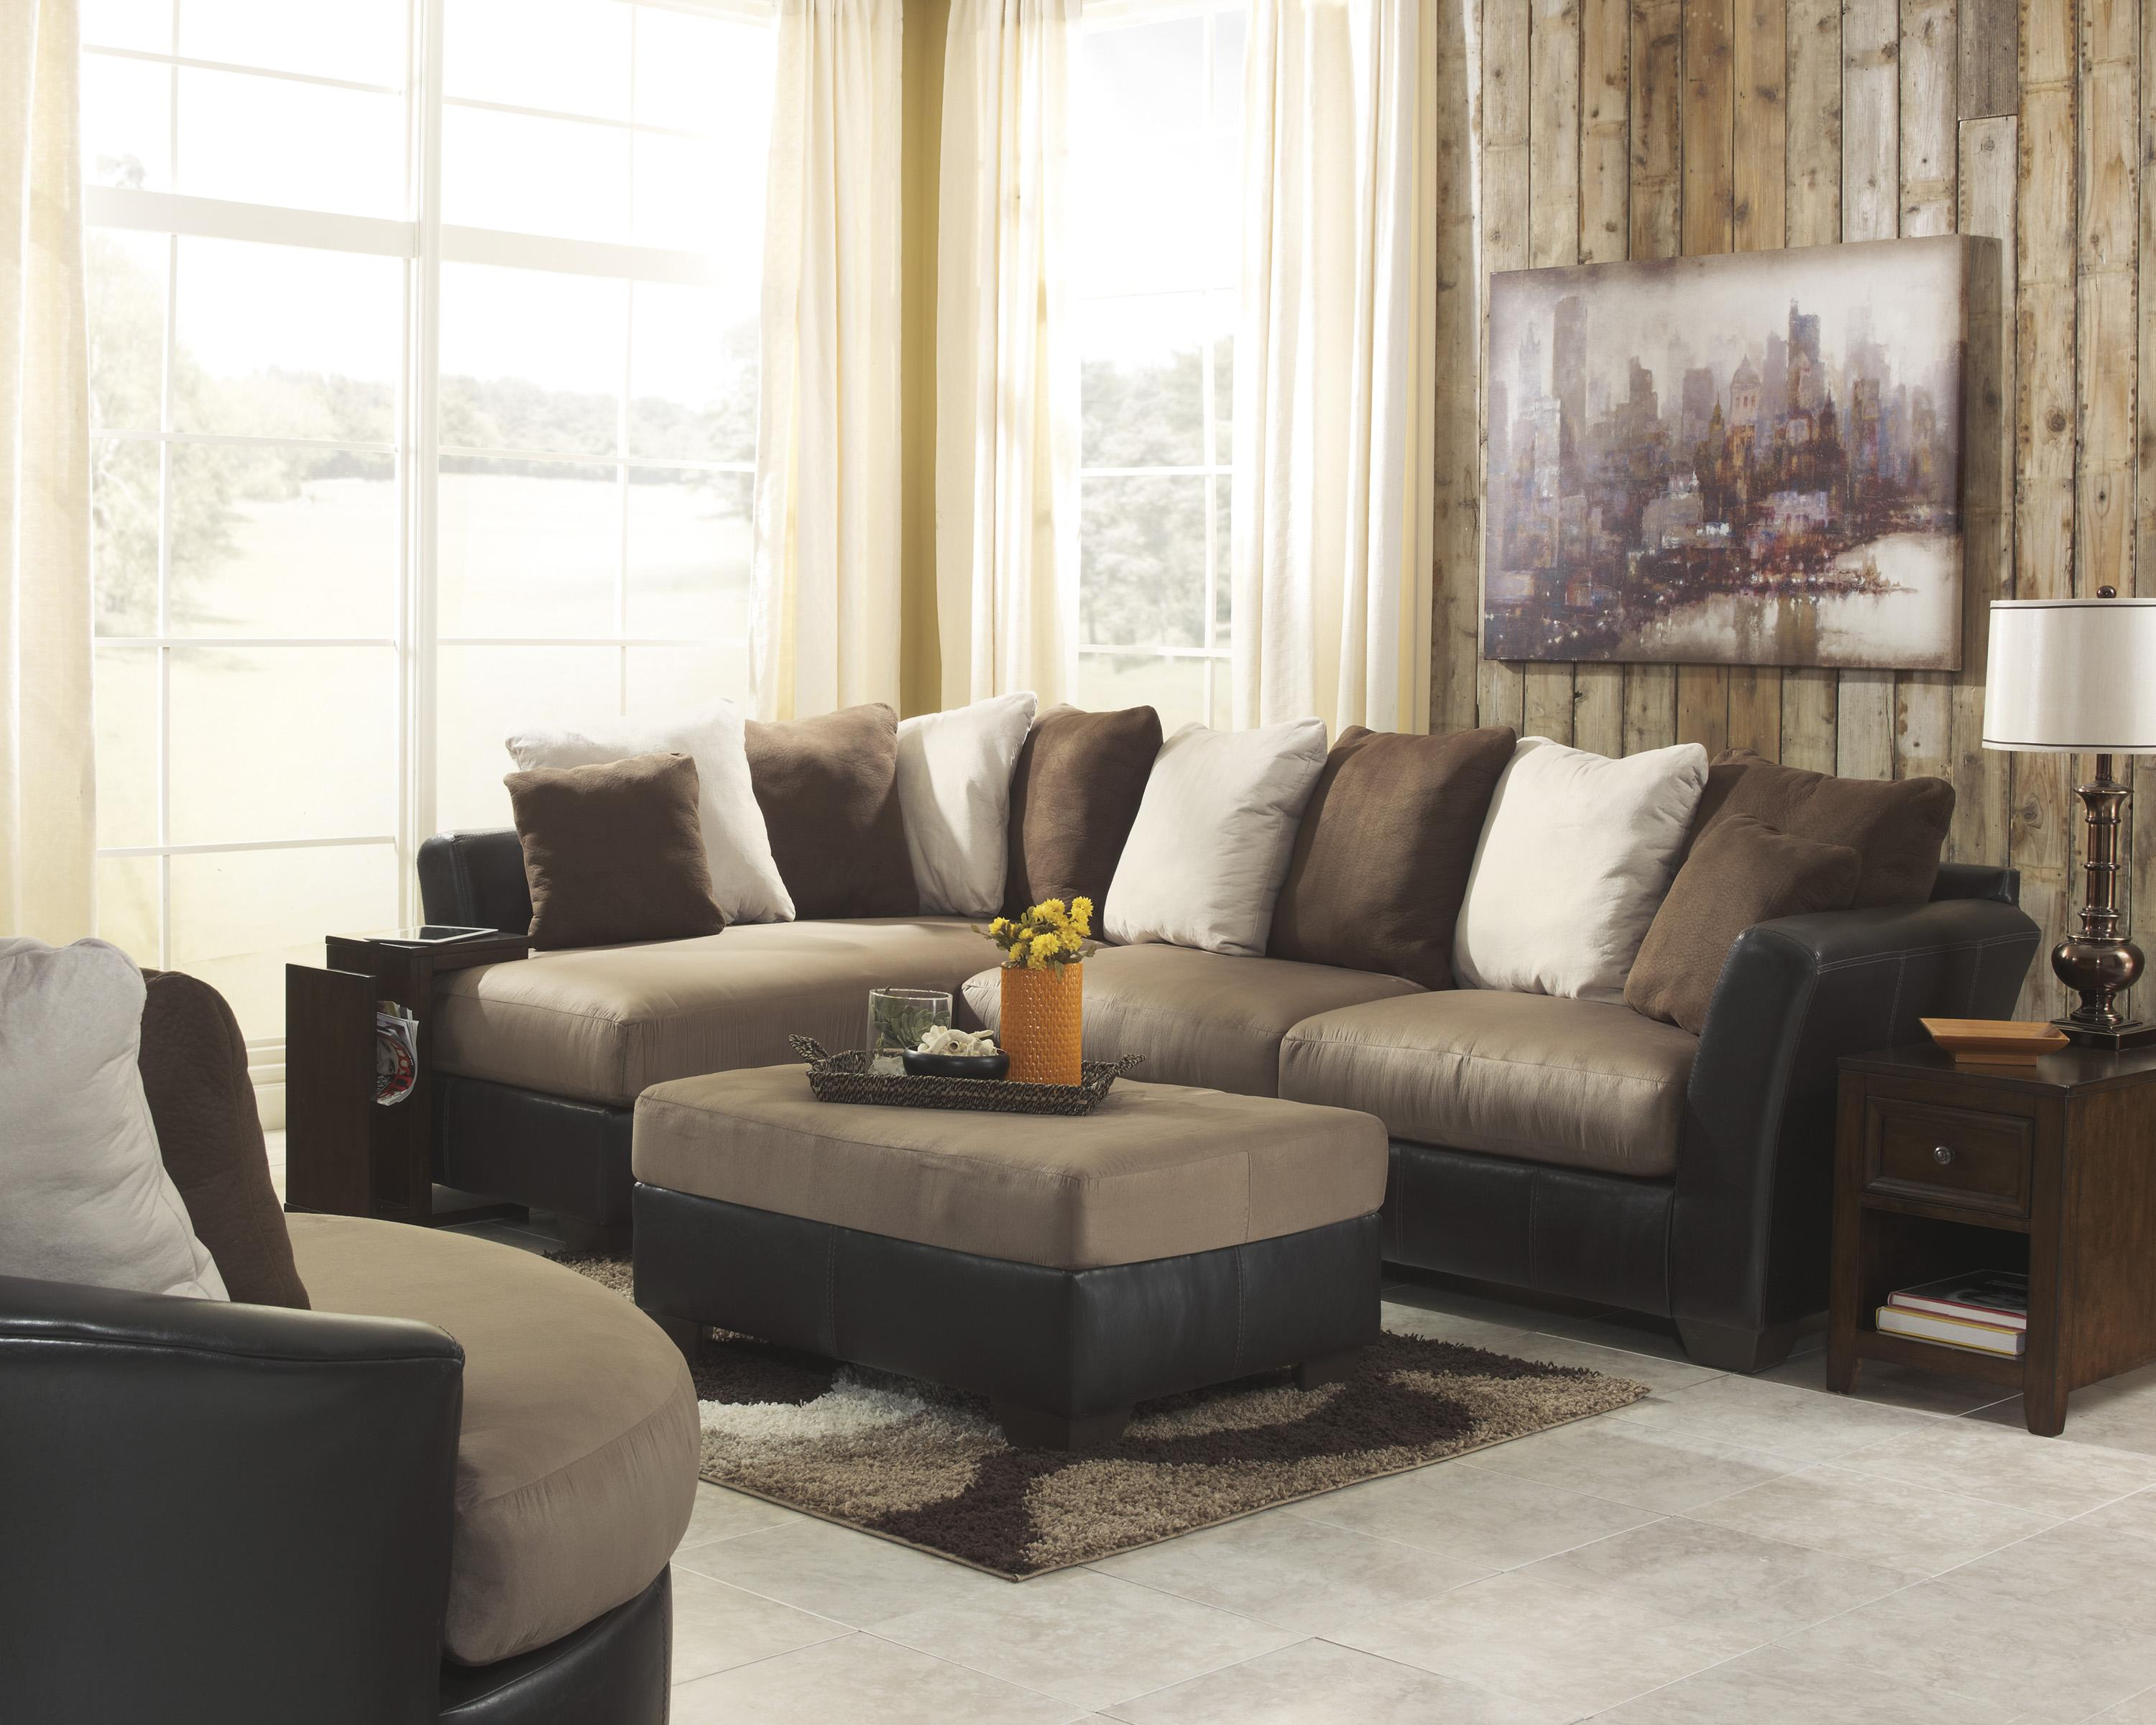 Benchcraft Masoli - Mocha Stationary Living Room Group - Item Number: 14201 Living Room Group 5